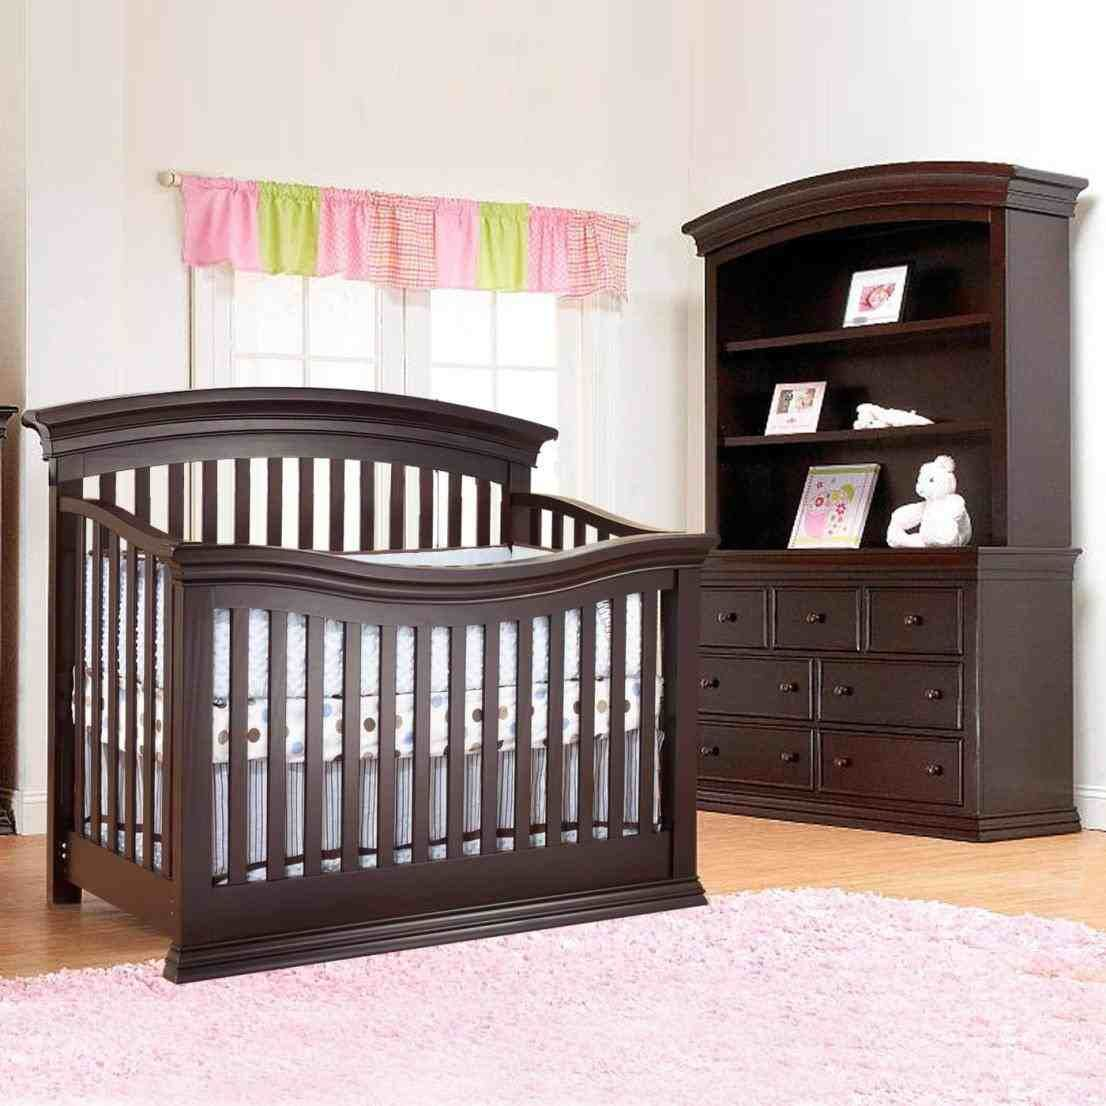 30 Jcpenney Baby Furniture Sale   Simple Interior Design For Bedroom Check  More At Http: